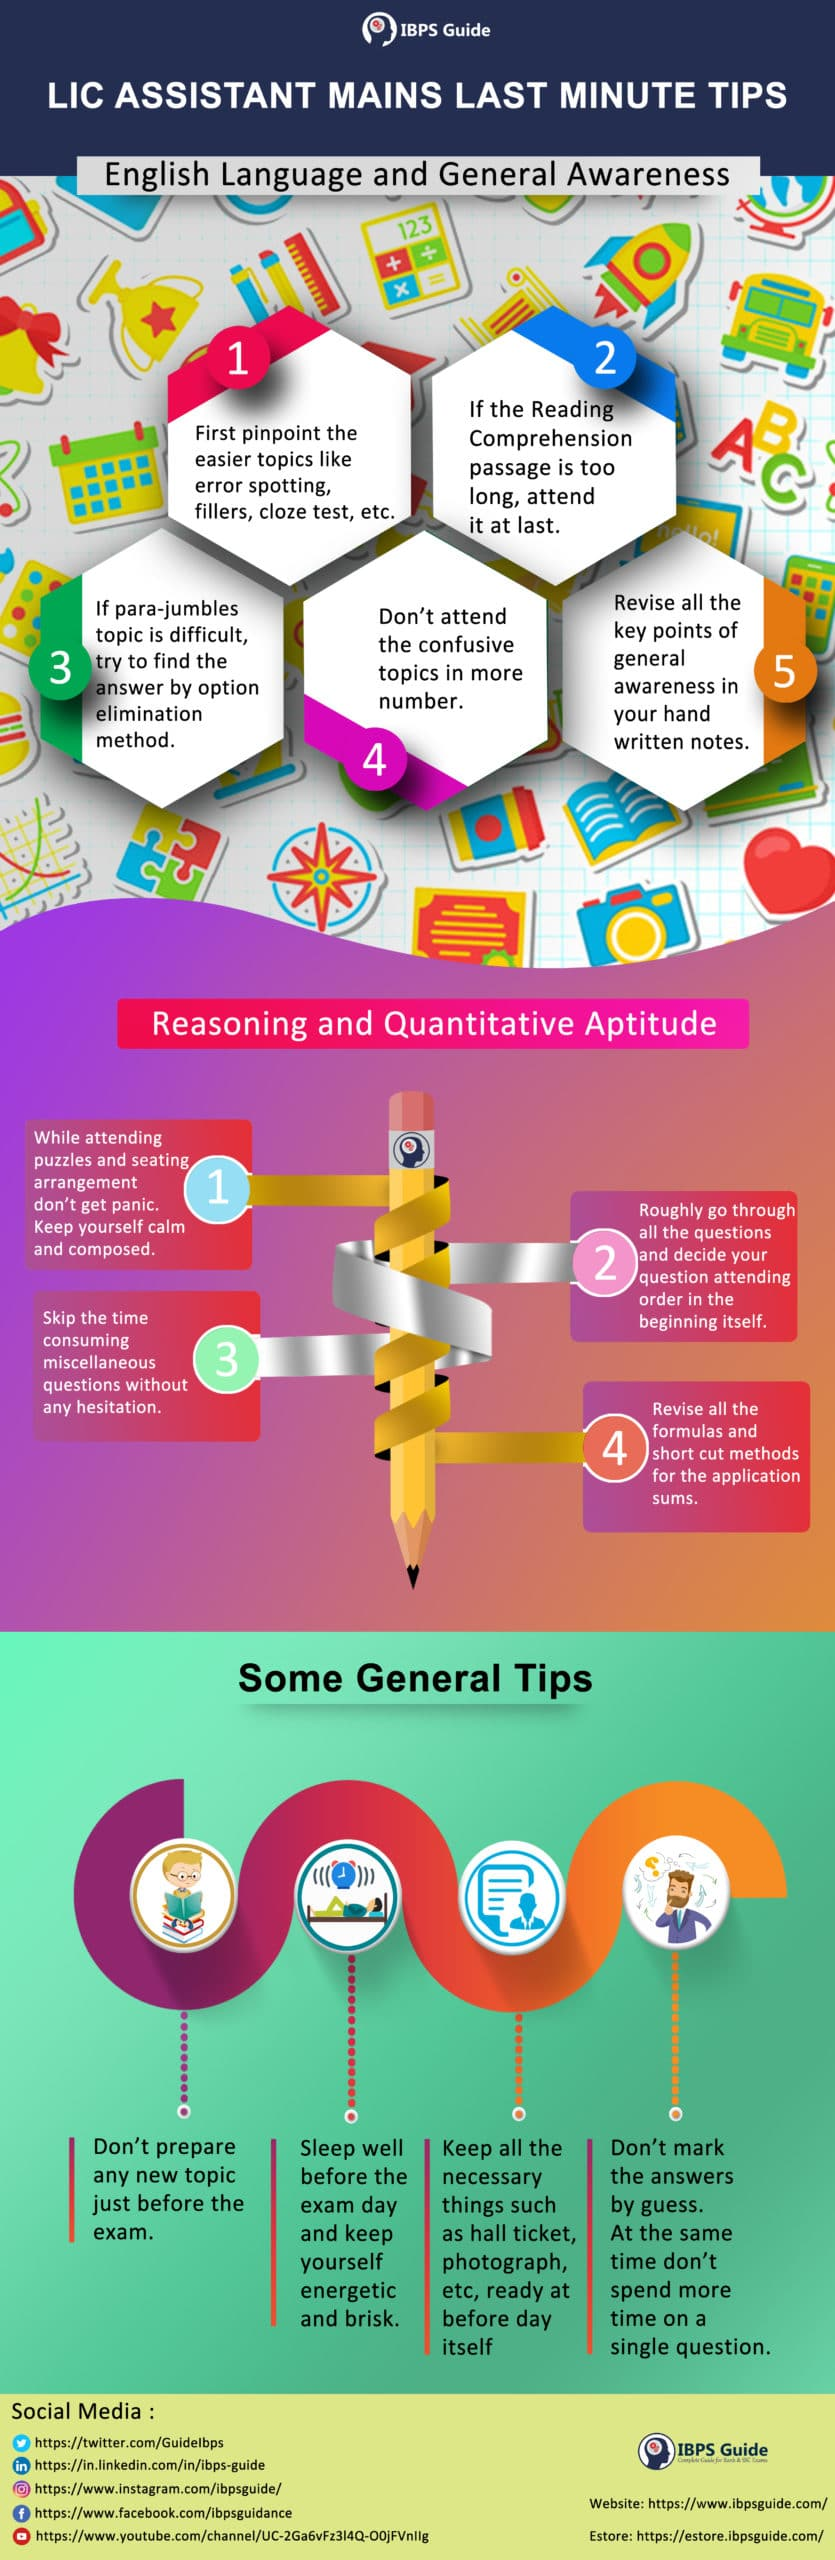 LIC Assistant Mains Last Minute Tips - Infographic: Check Here